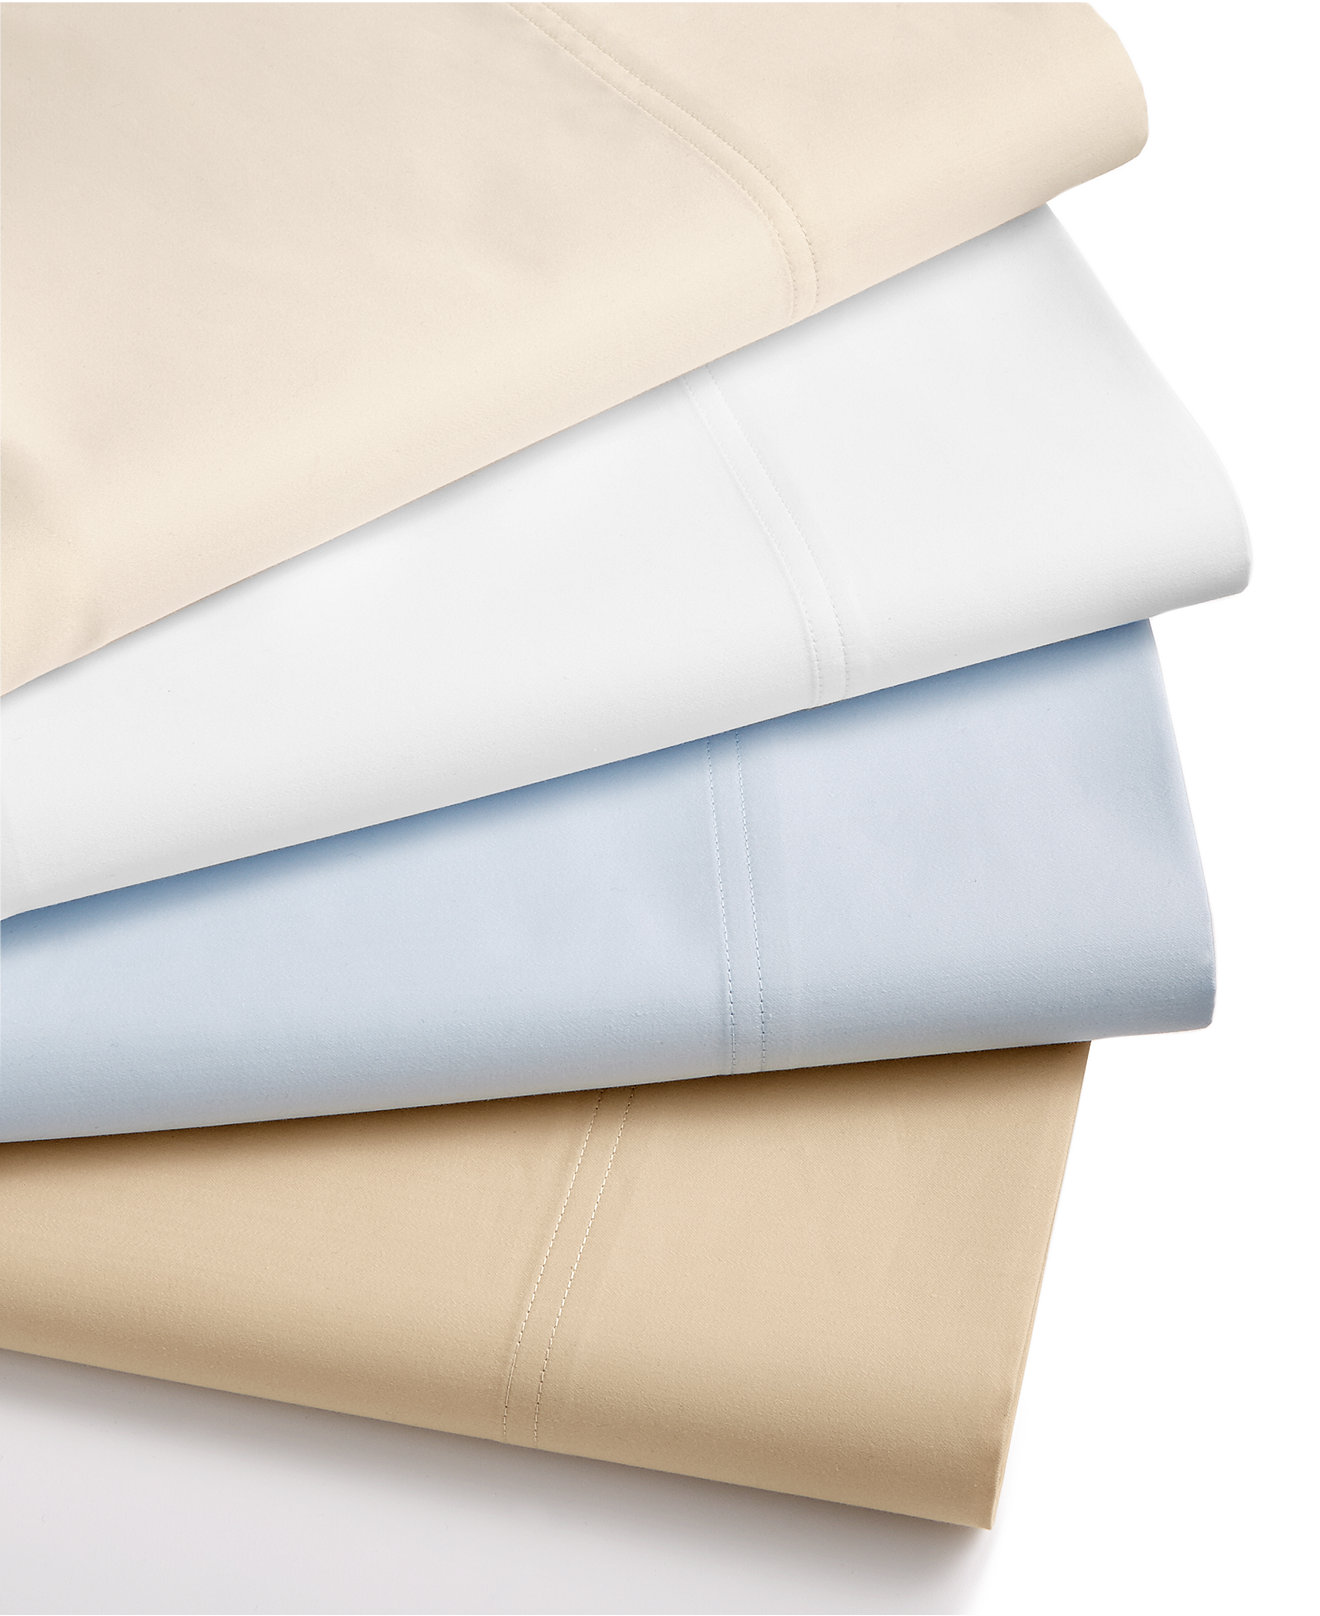 Egyptian Cotton Sheets | Flannel Fitted Sheet | Sheets and Pillowcases